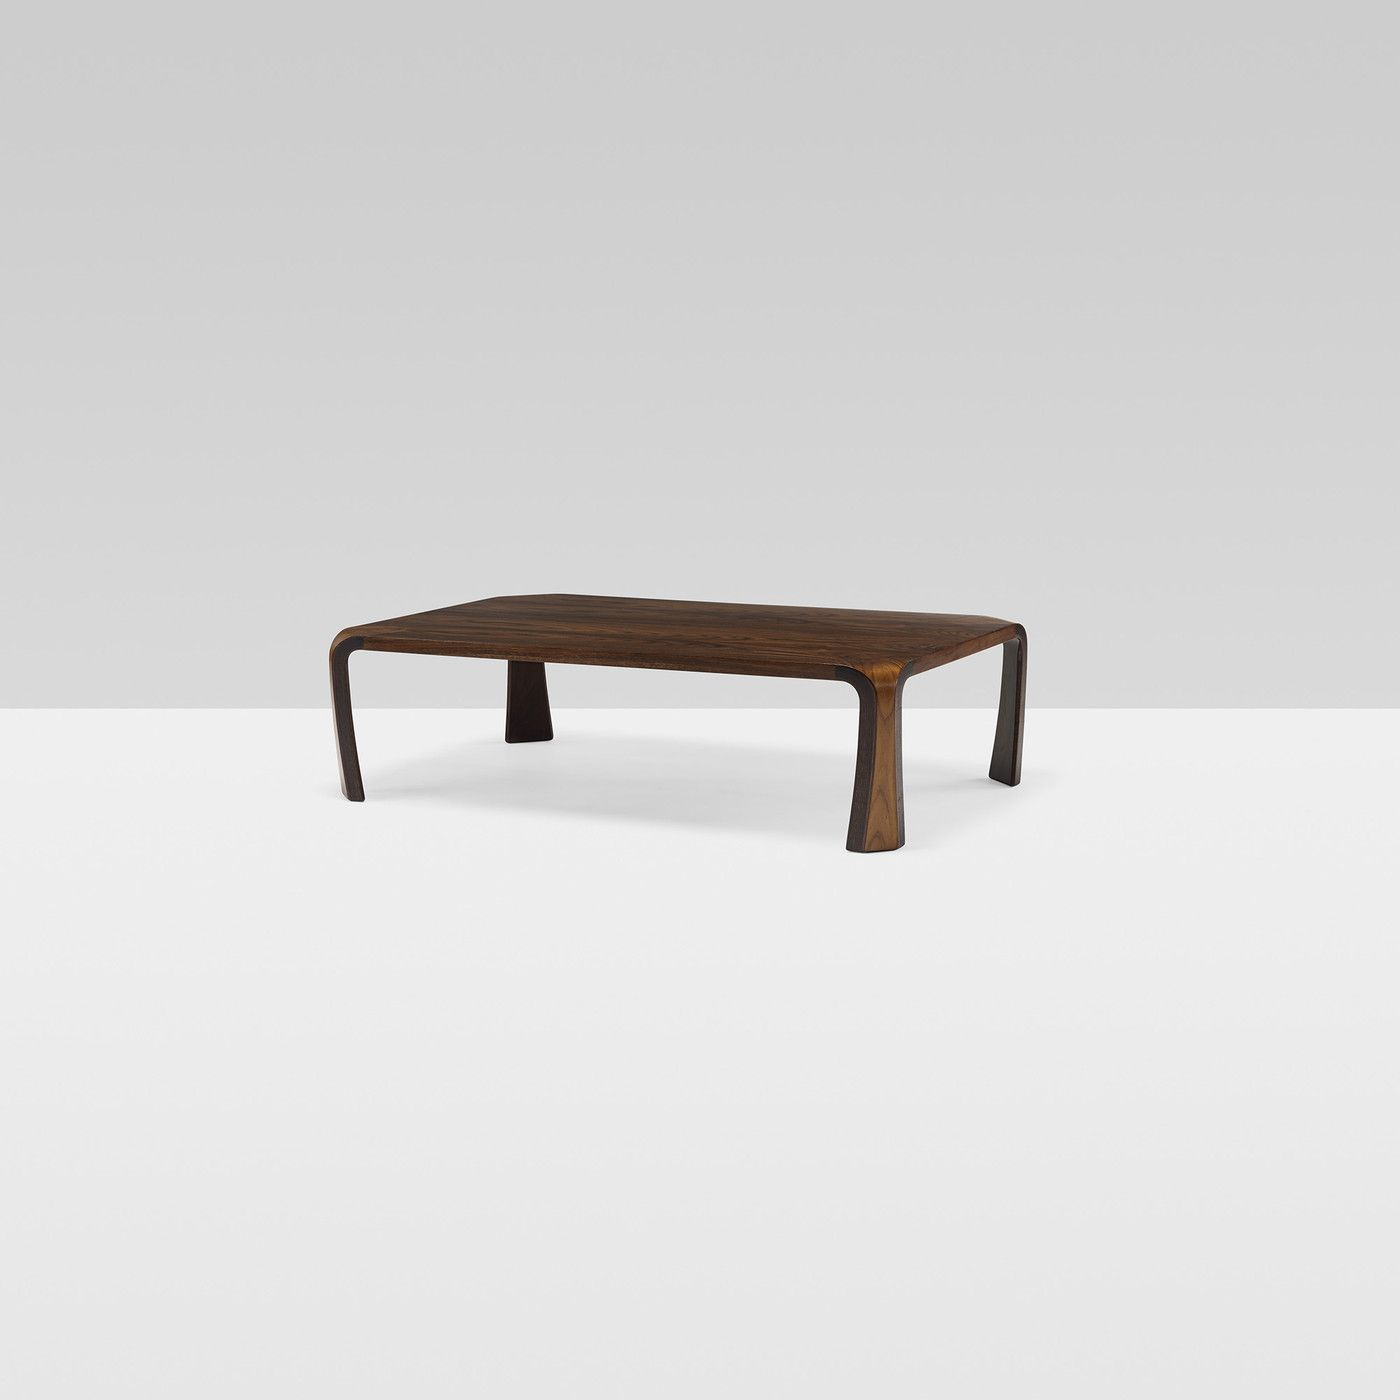 294: Saburo Inui / coffee table < Design, 12 June 2014 < Auctions | Wright